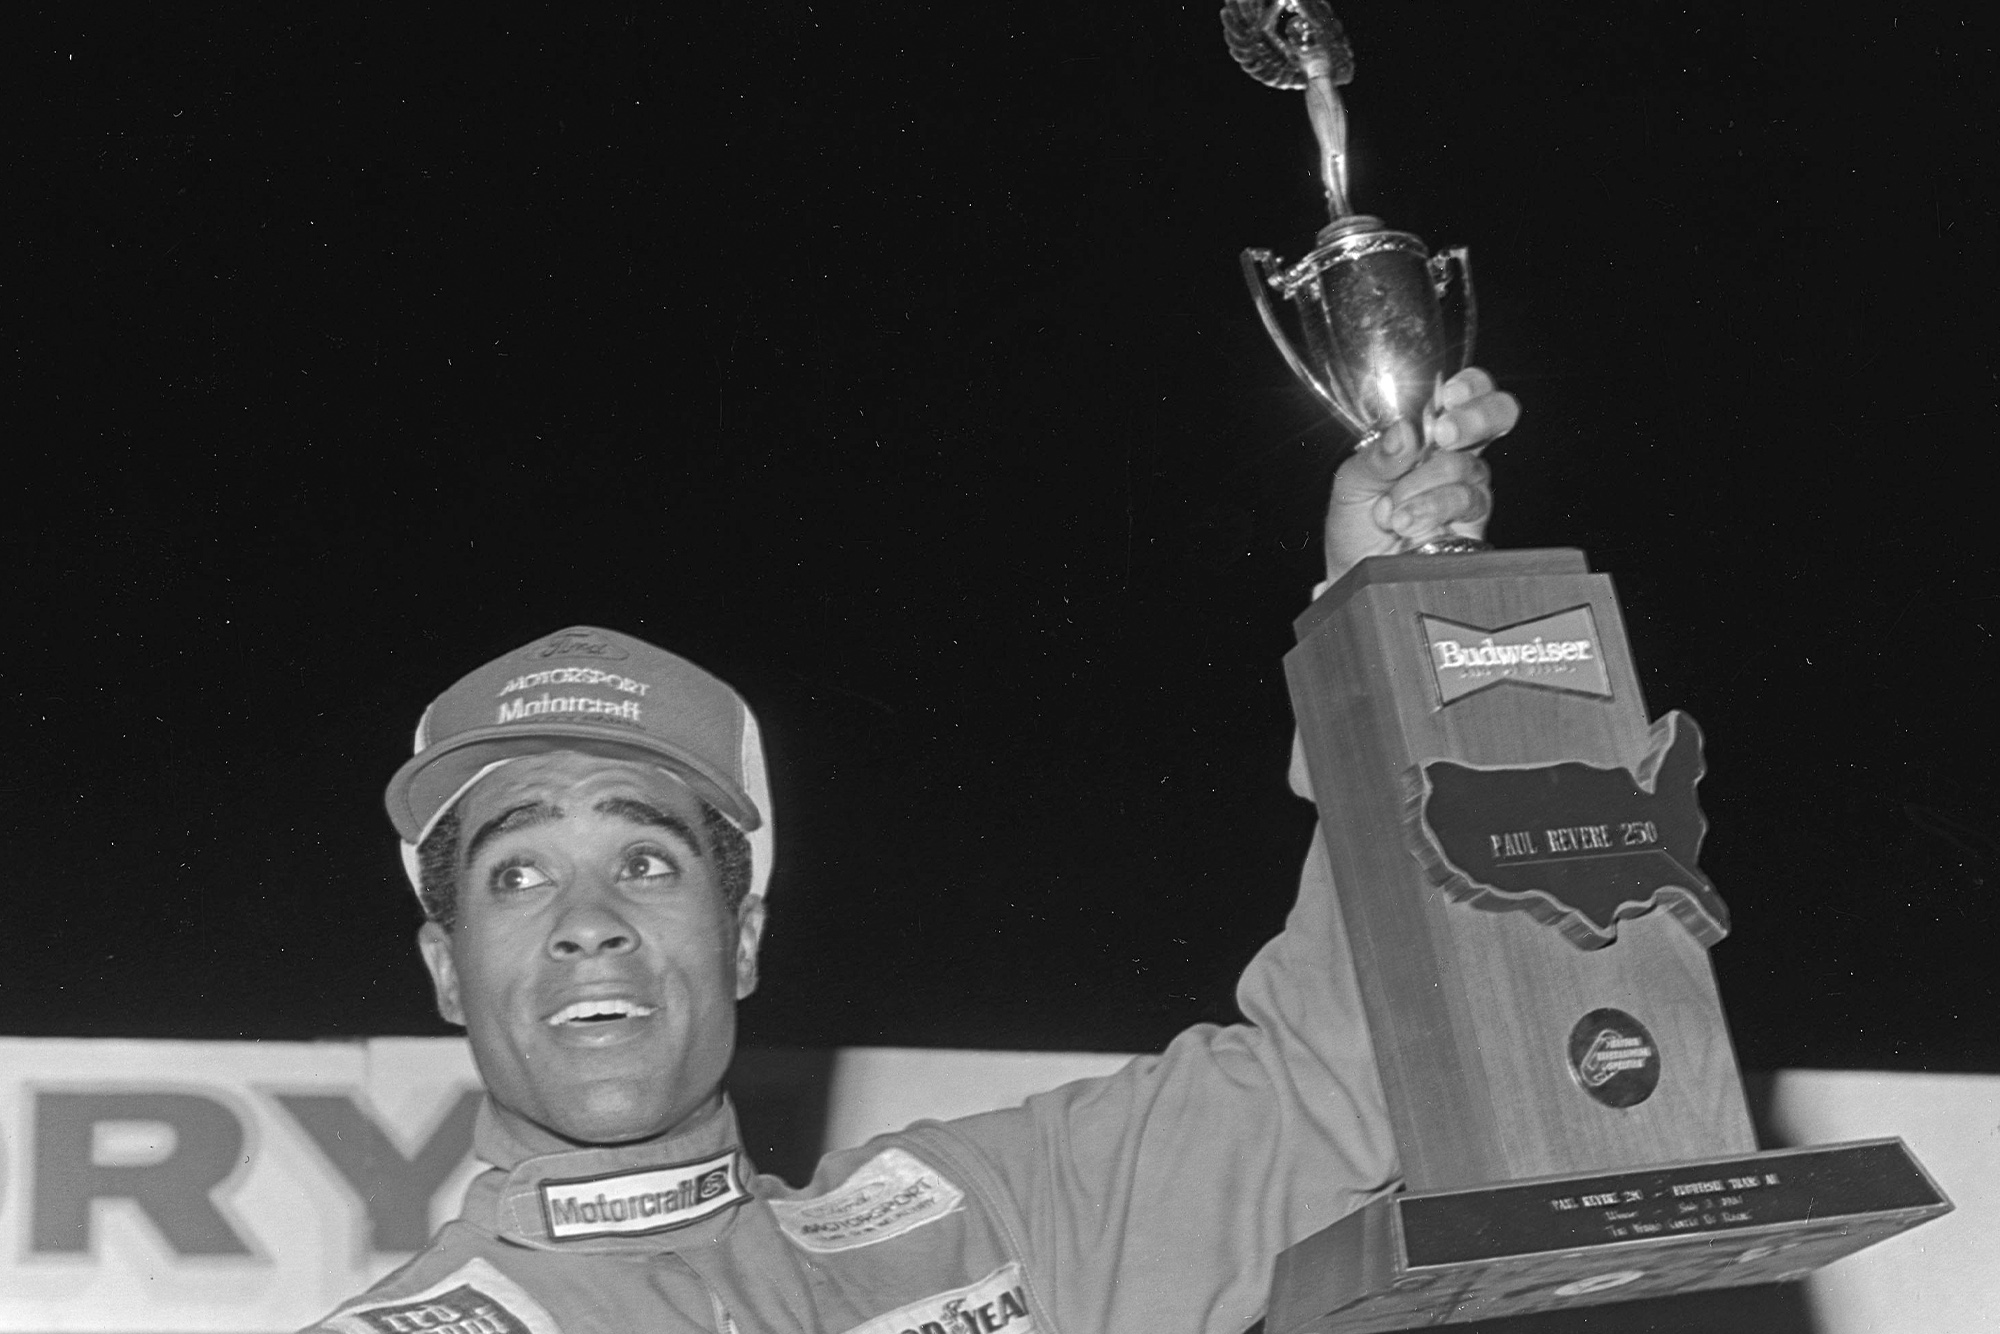 Willy T Ribbs holds the winning trophy at the 1984 Paul Revere 250 SCCA Trans Am Race at Daytona